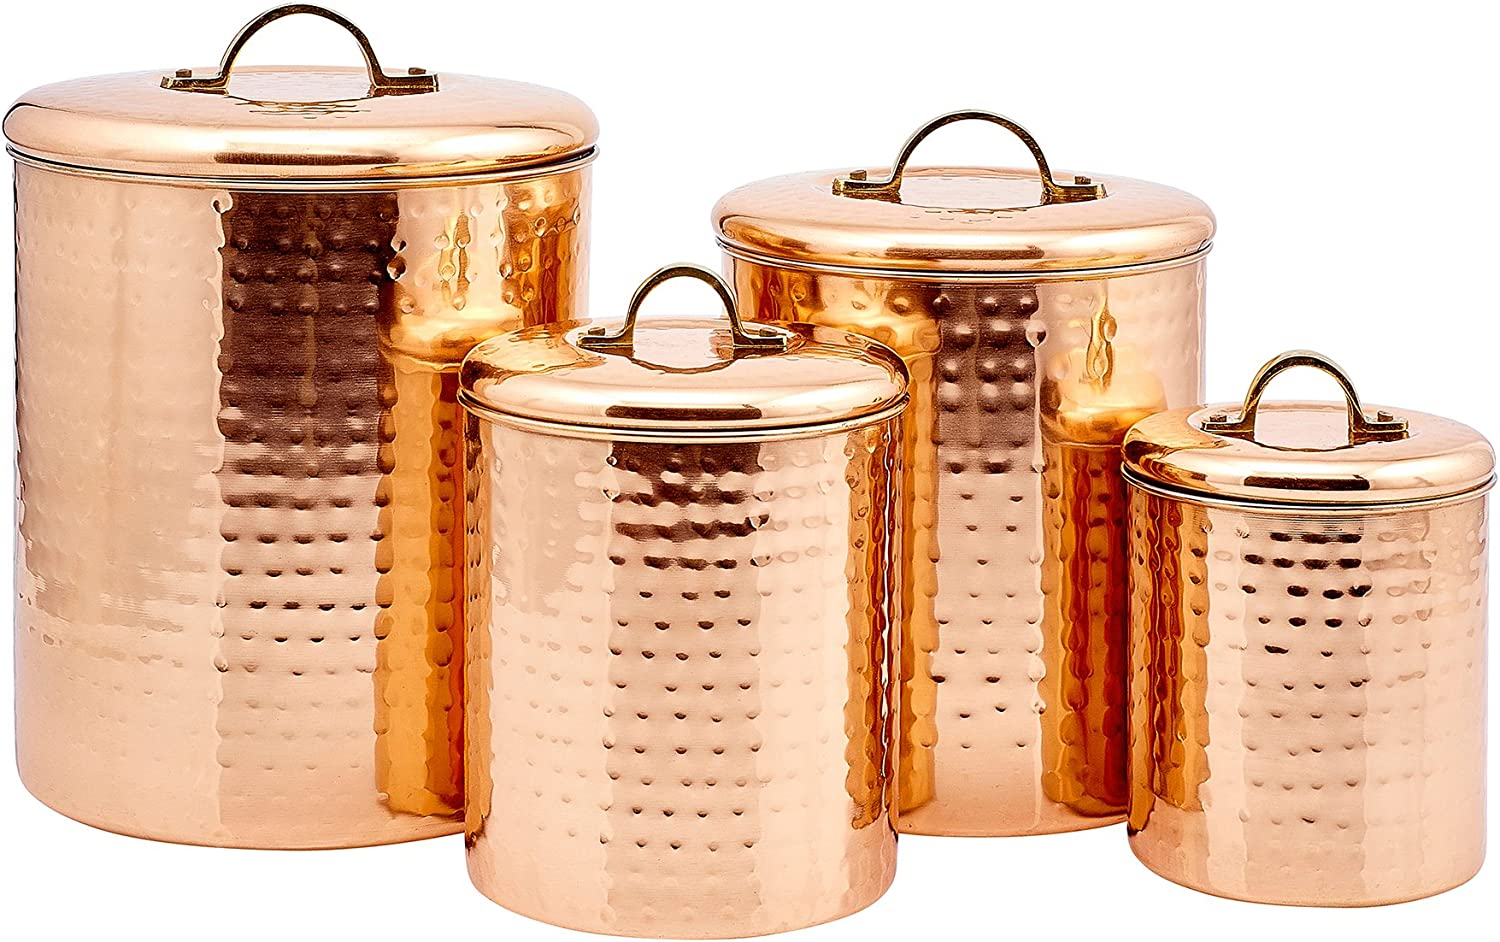 Vintage Copper Kitchen Storage Tins Cans Sugar Containers Caddies Air Tight Lid